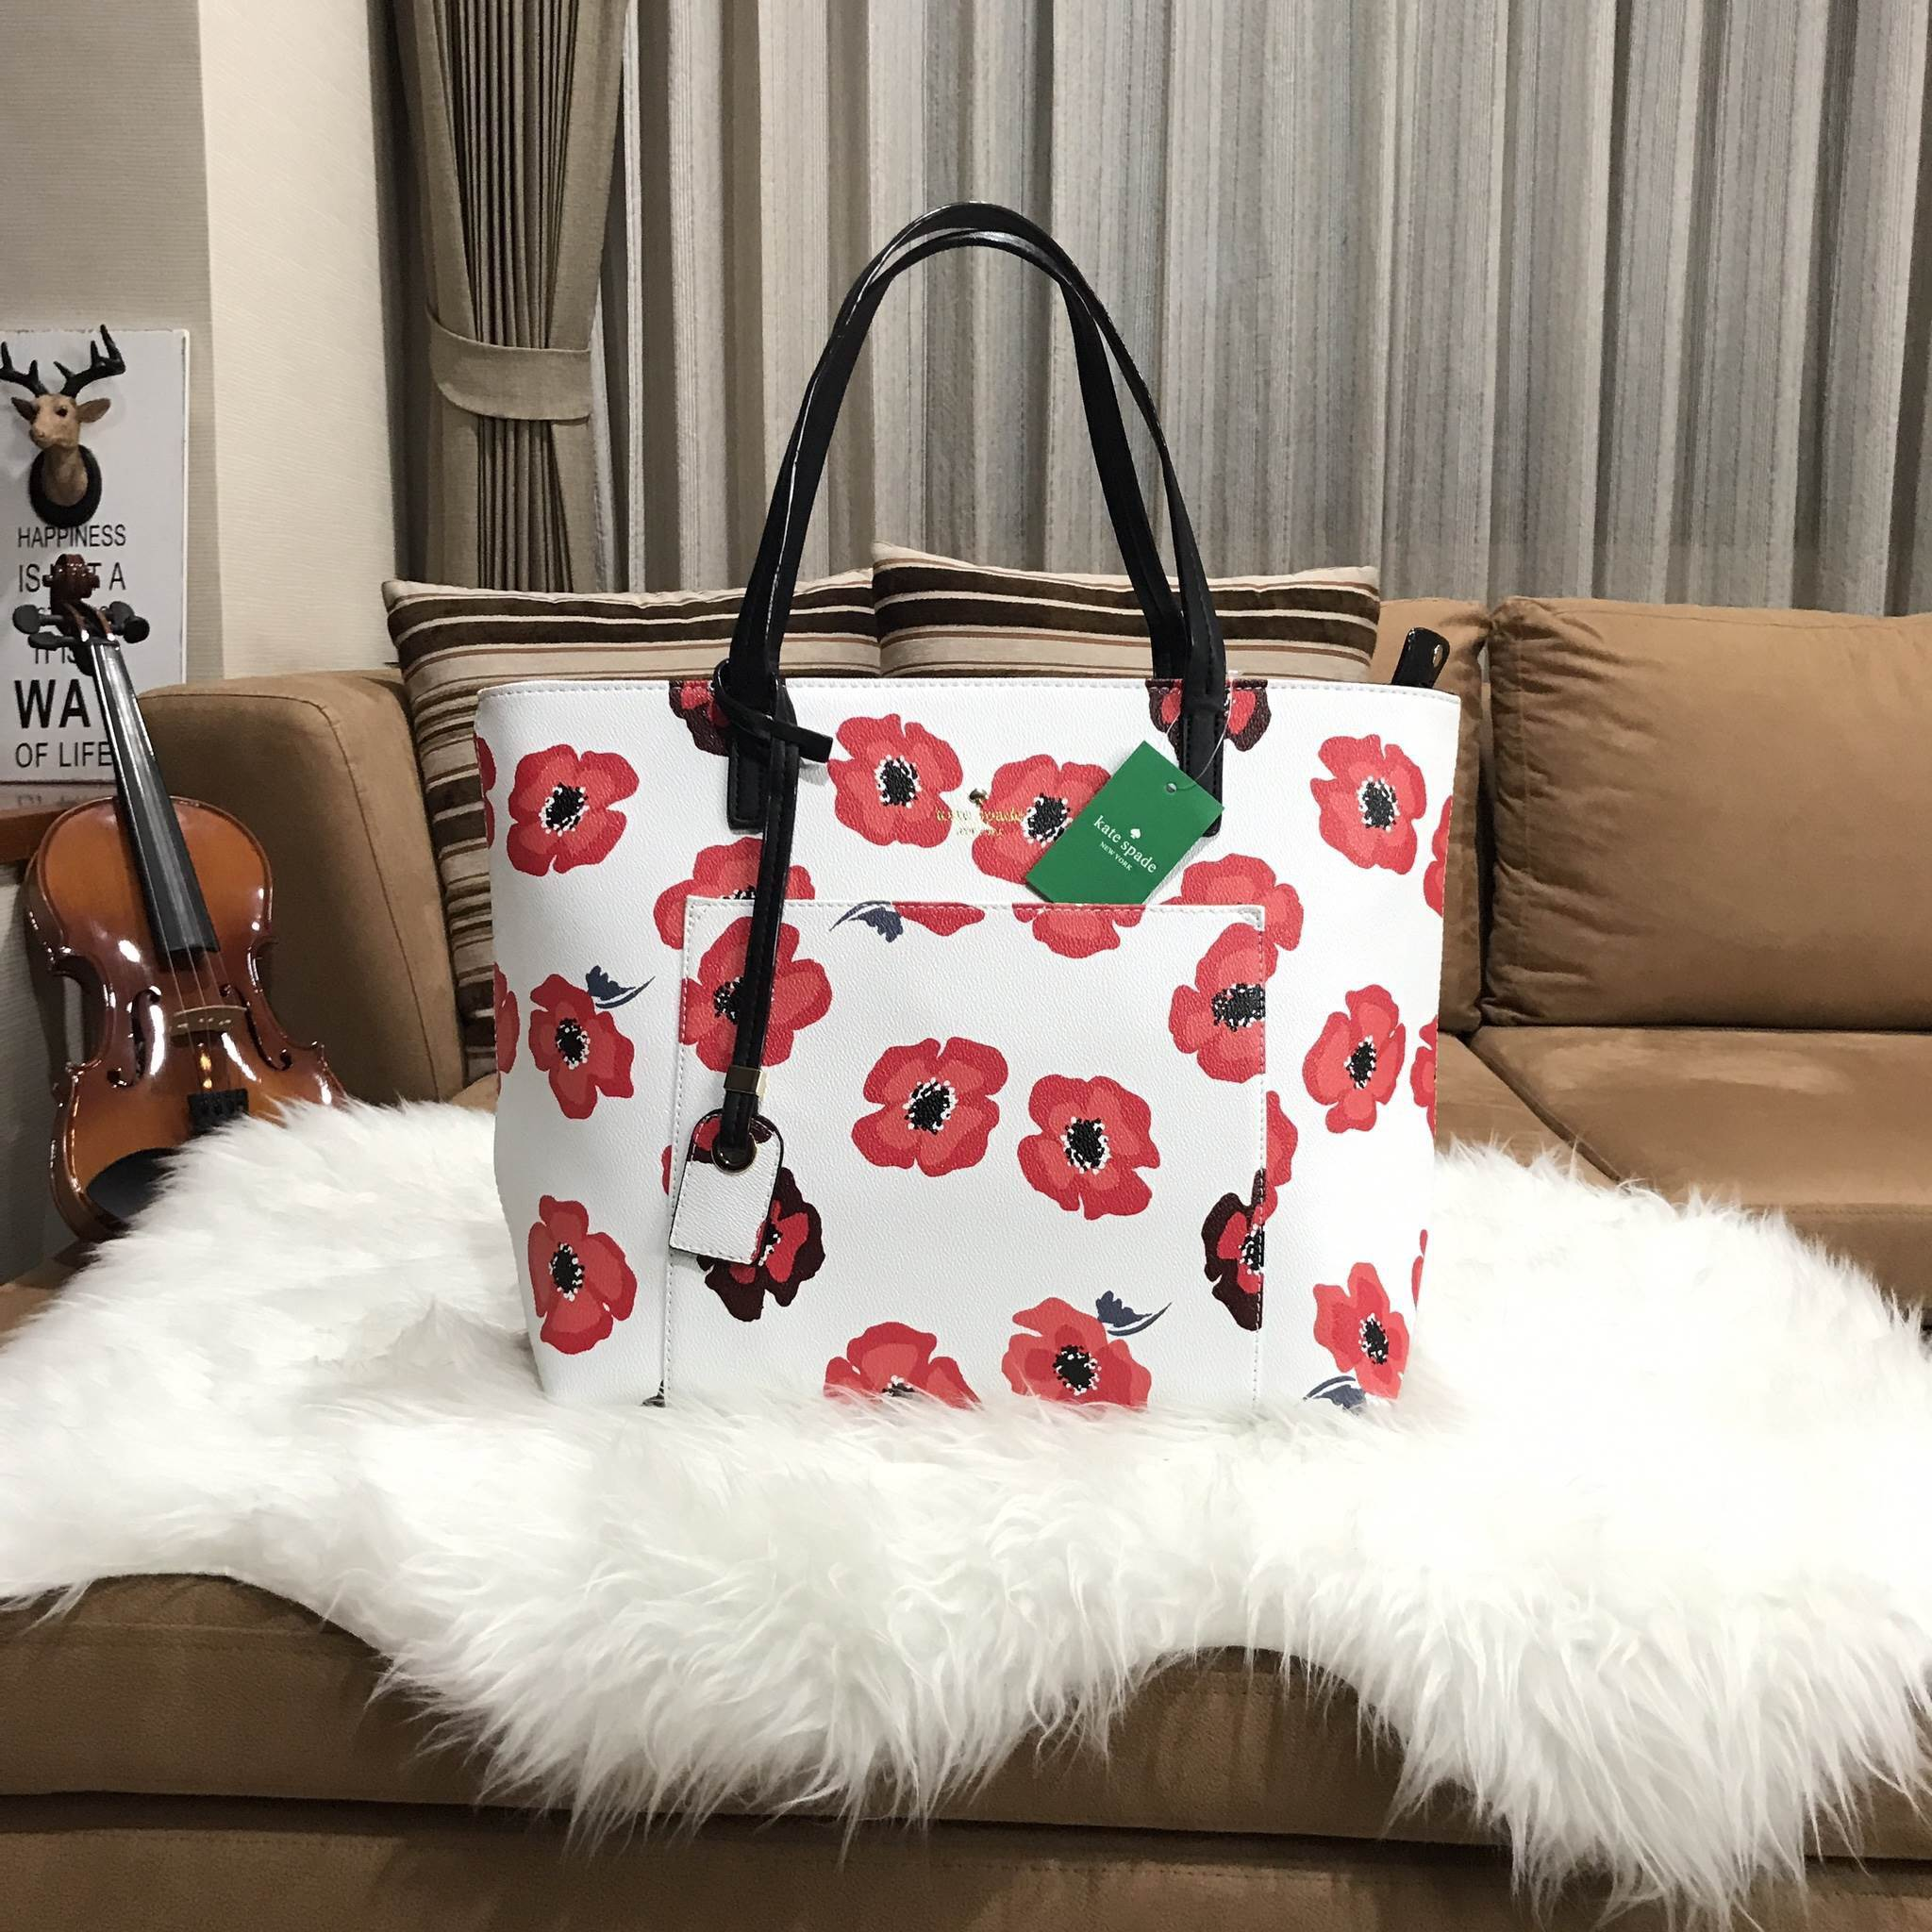 KATE SPADE New York Hyde Lane Poppies Riley Rose Tote Bag *ขาว